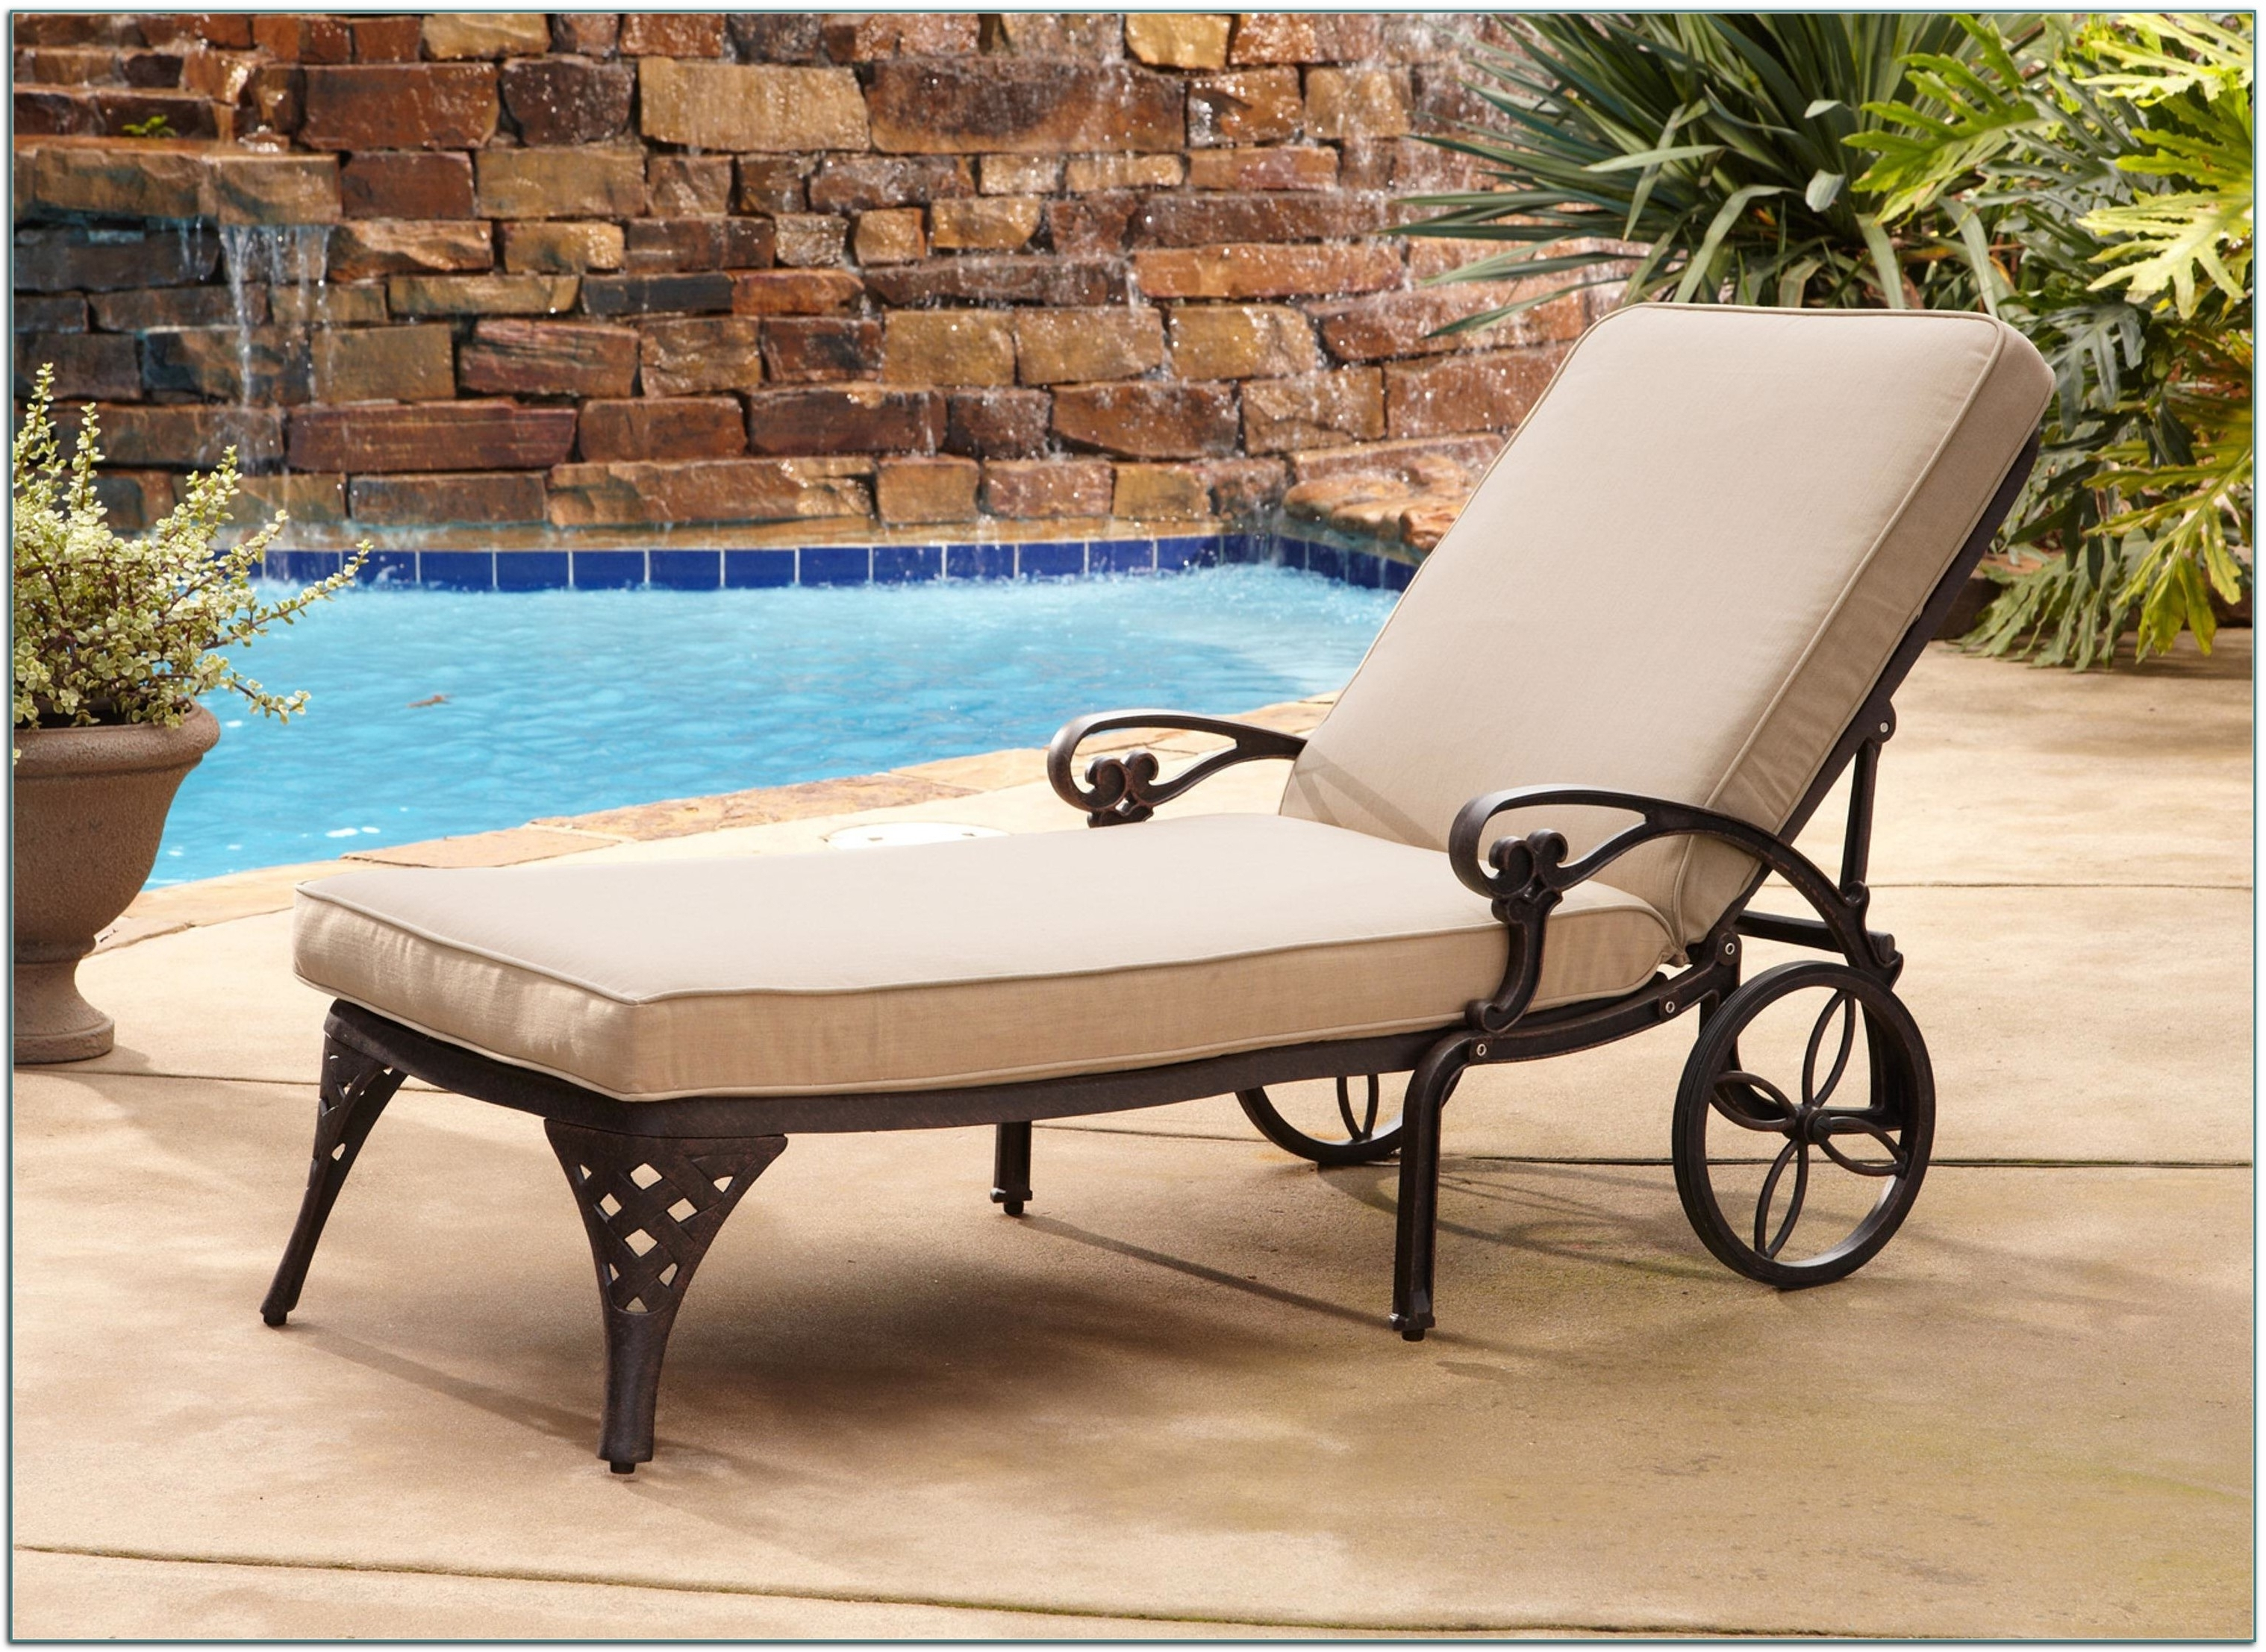 2017 Outdoor Chaise Lounge Chairs At Walmart Within Chaise Lounge Chairs Outdoor Pool • Lounge Chairs Ideas (View 13 of 15)